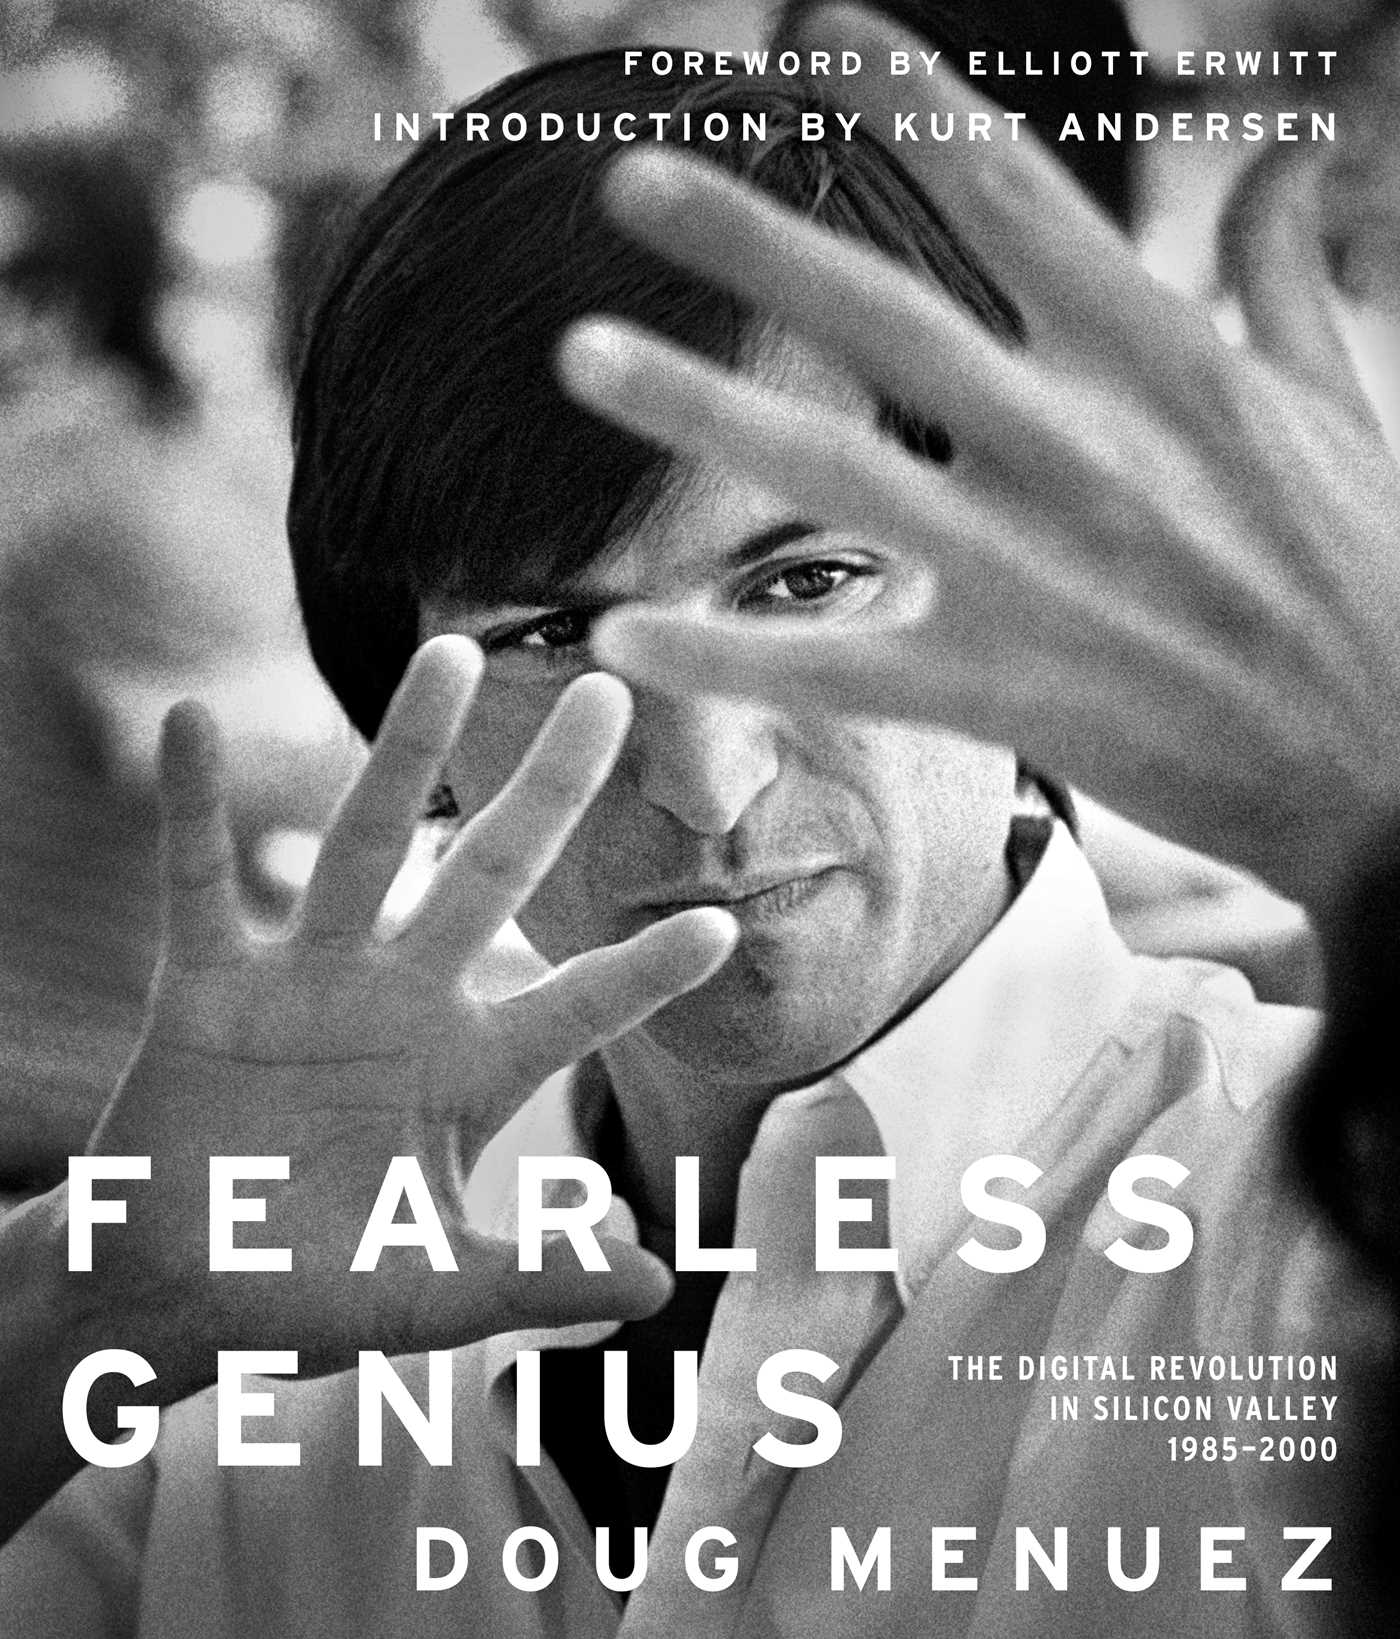 Fearless-genius-9781476752693_hr